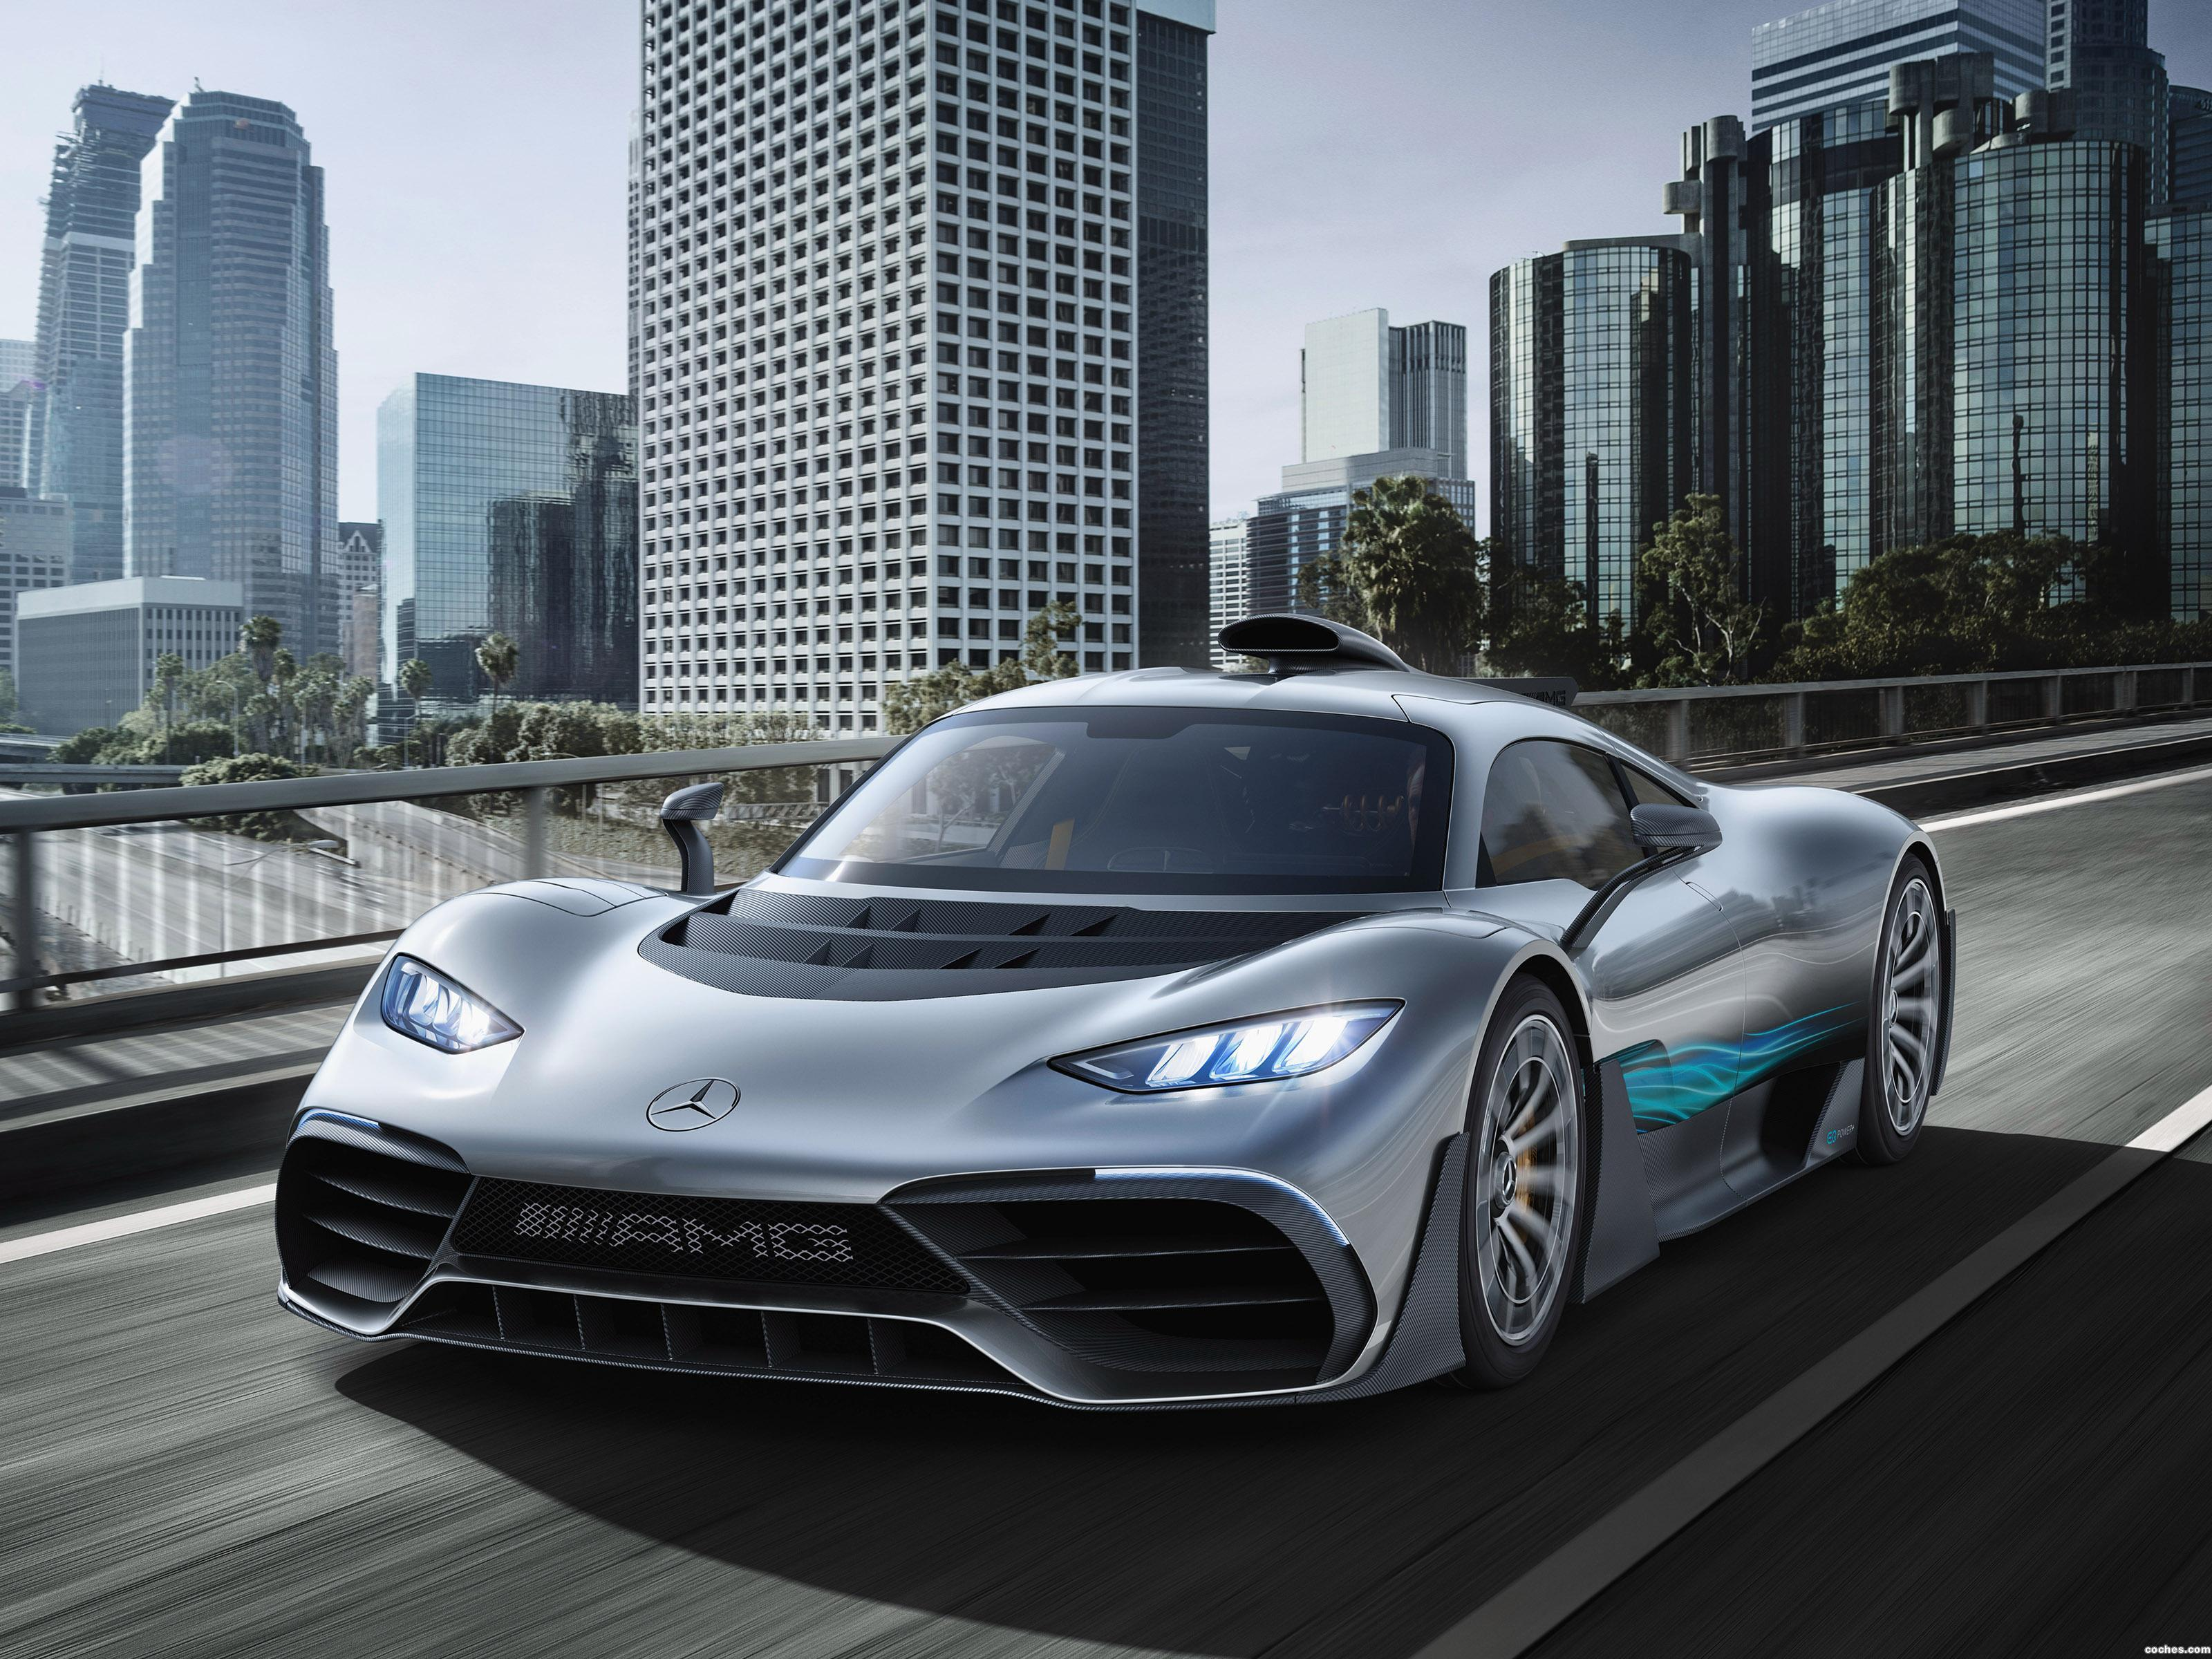 amg_mercedes-project-one-2017_r11.jpg